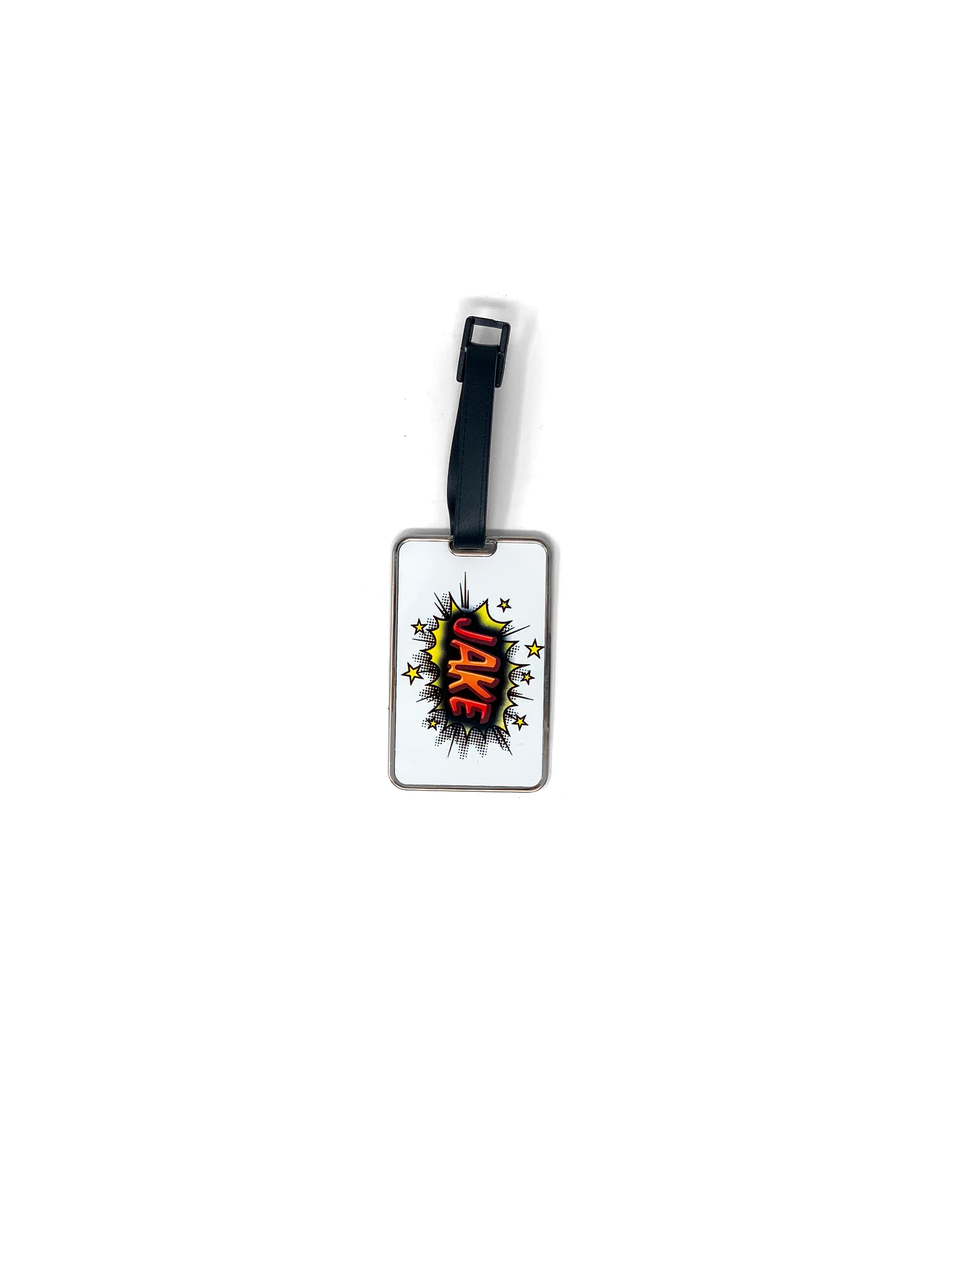 Metal Name Bag Tag